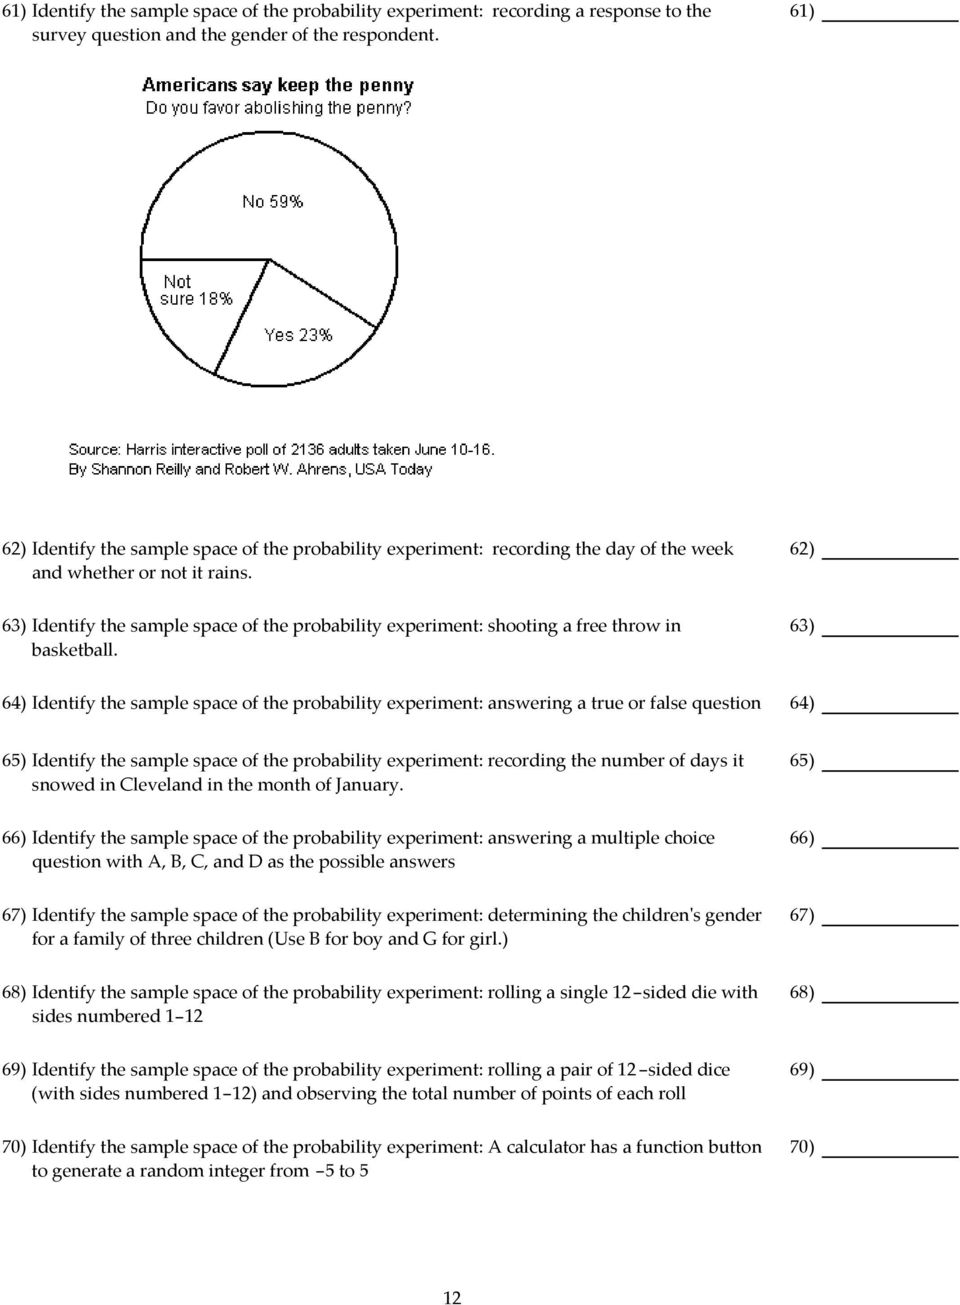 62) 63) Identify the sample space of the probability experiment: shooting a free throw in basketball.